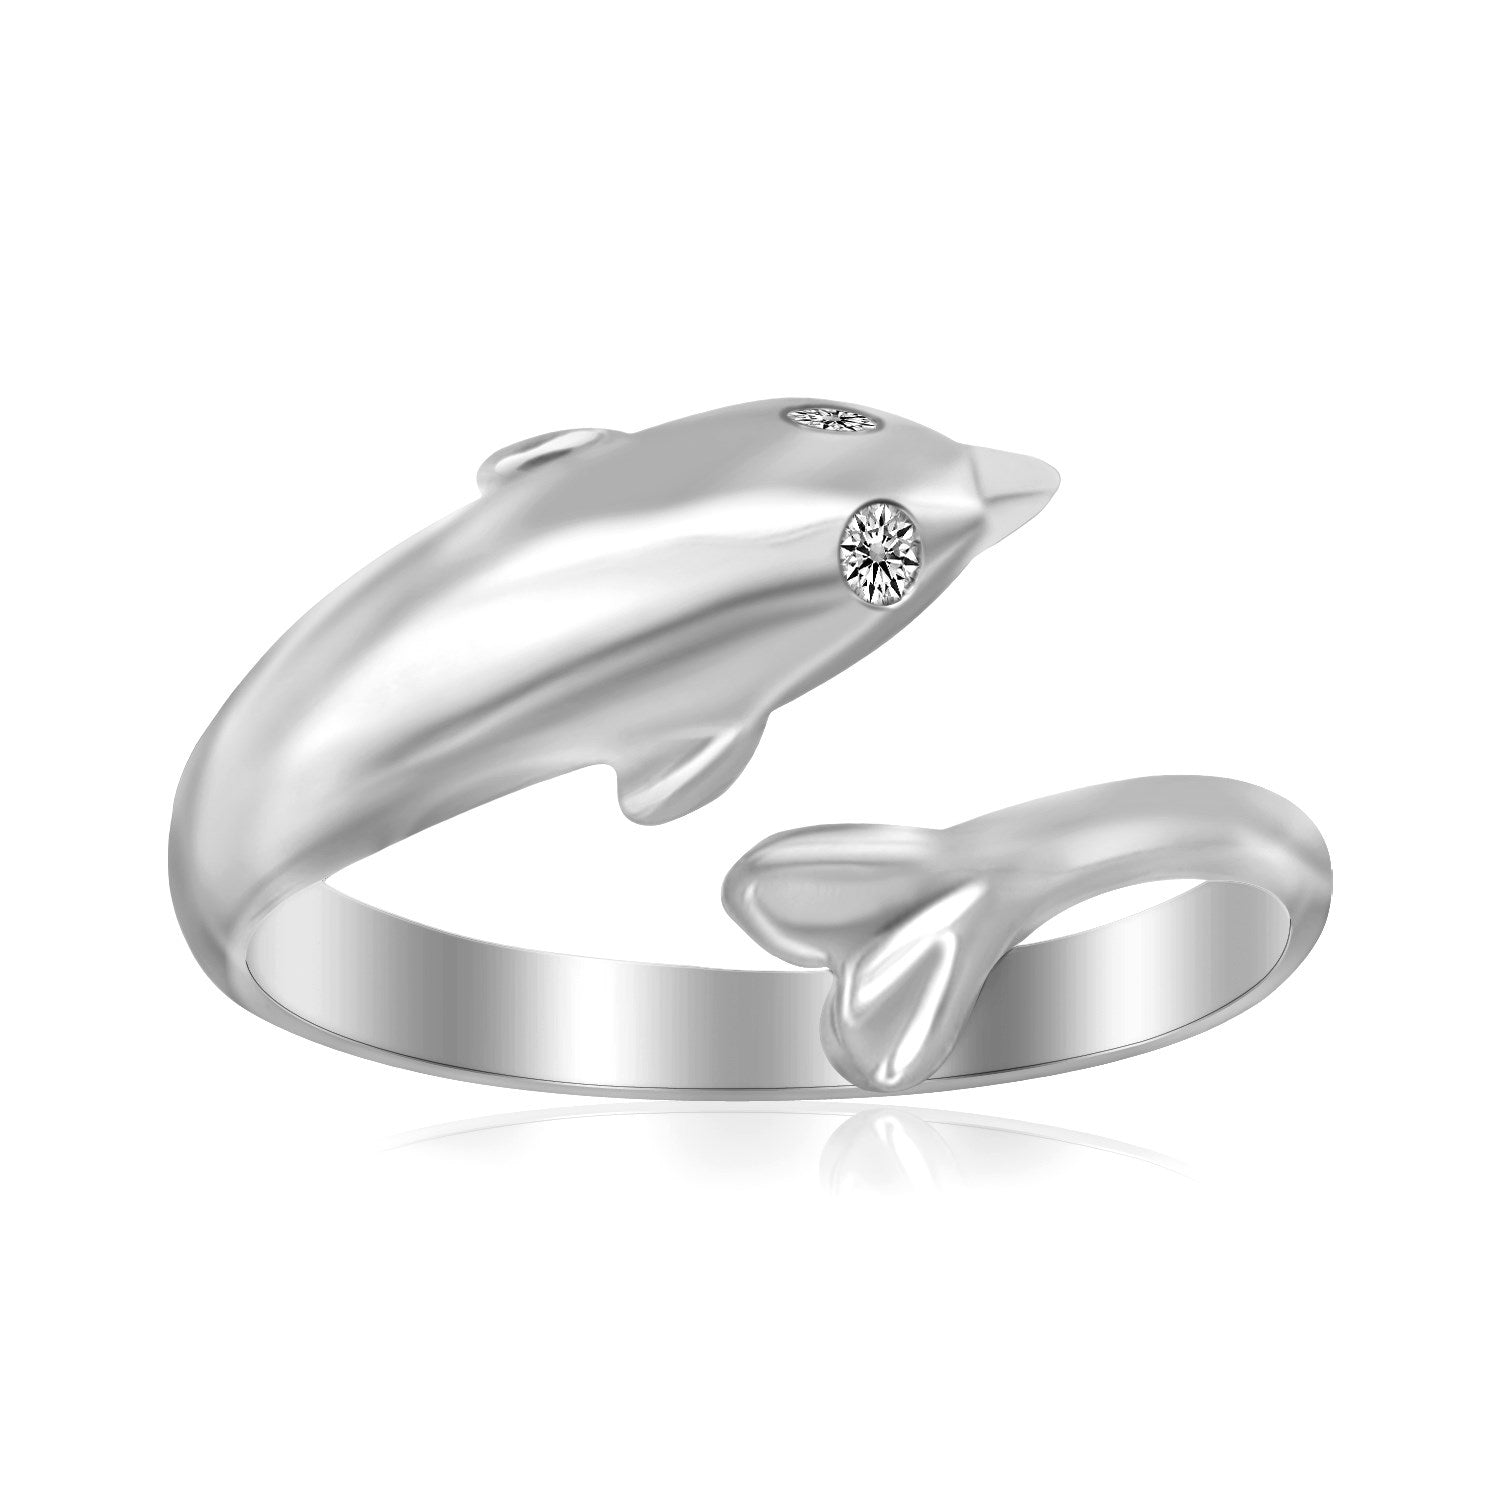 Sterling Silver Rhodium Plated Dolphin Design Polished Open Toe Ring - Uniquepedia.com